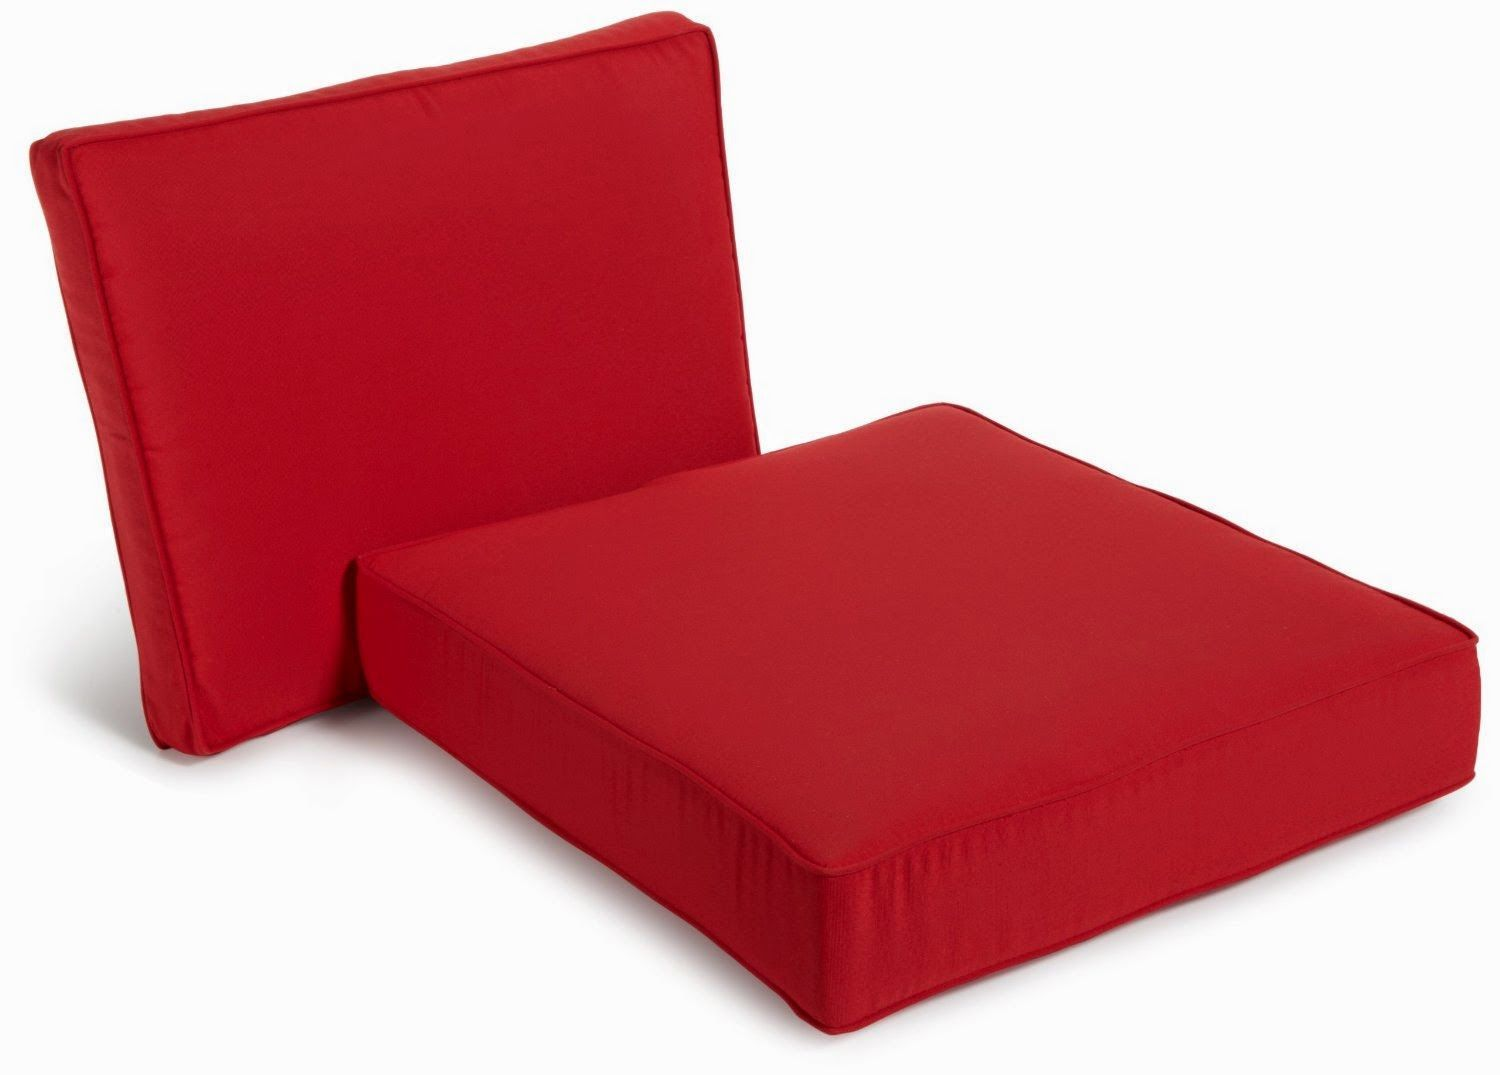 10 Sofa Seat Cushion Covers Most Of The Elegant And Lovely